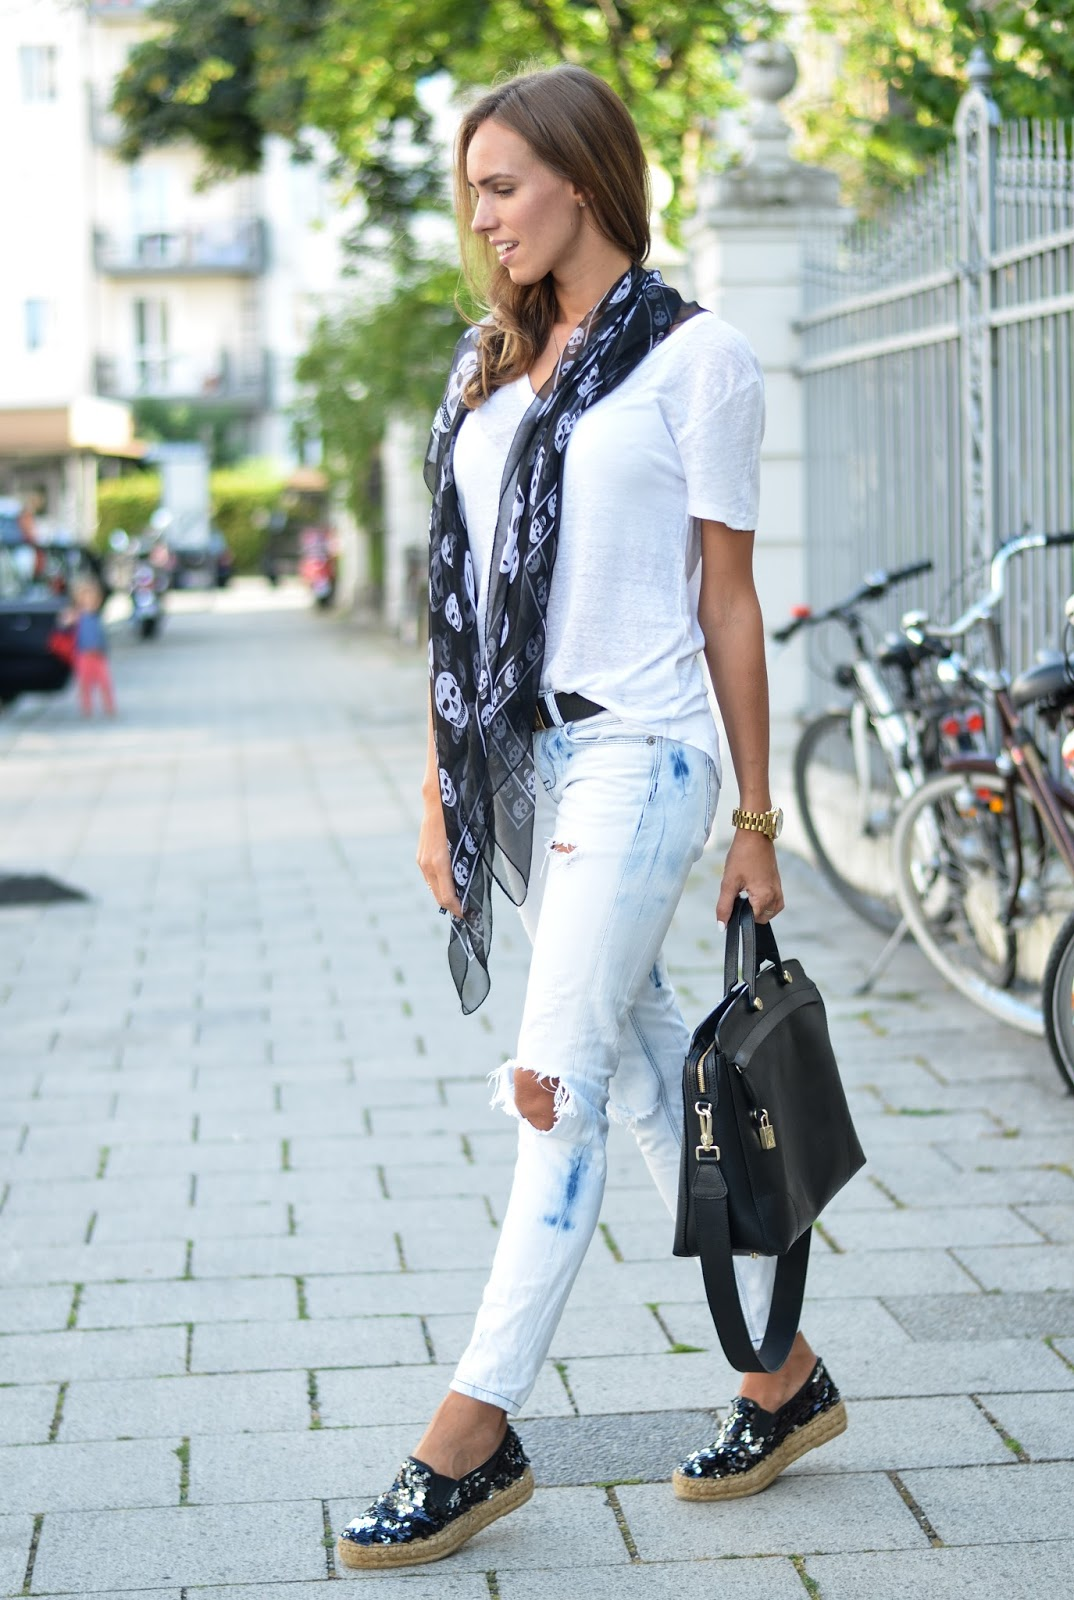 kristjaana mere black white casual summer outfit